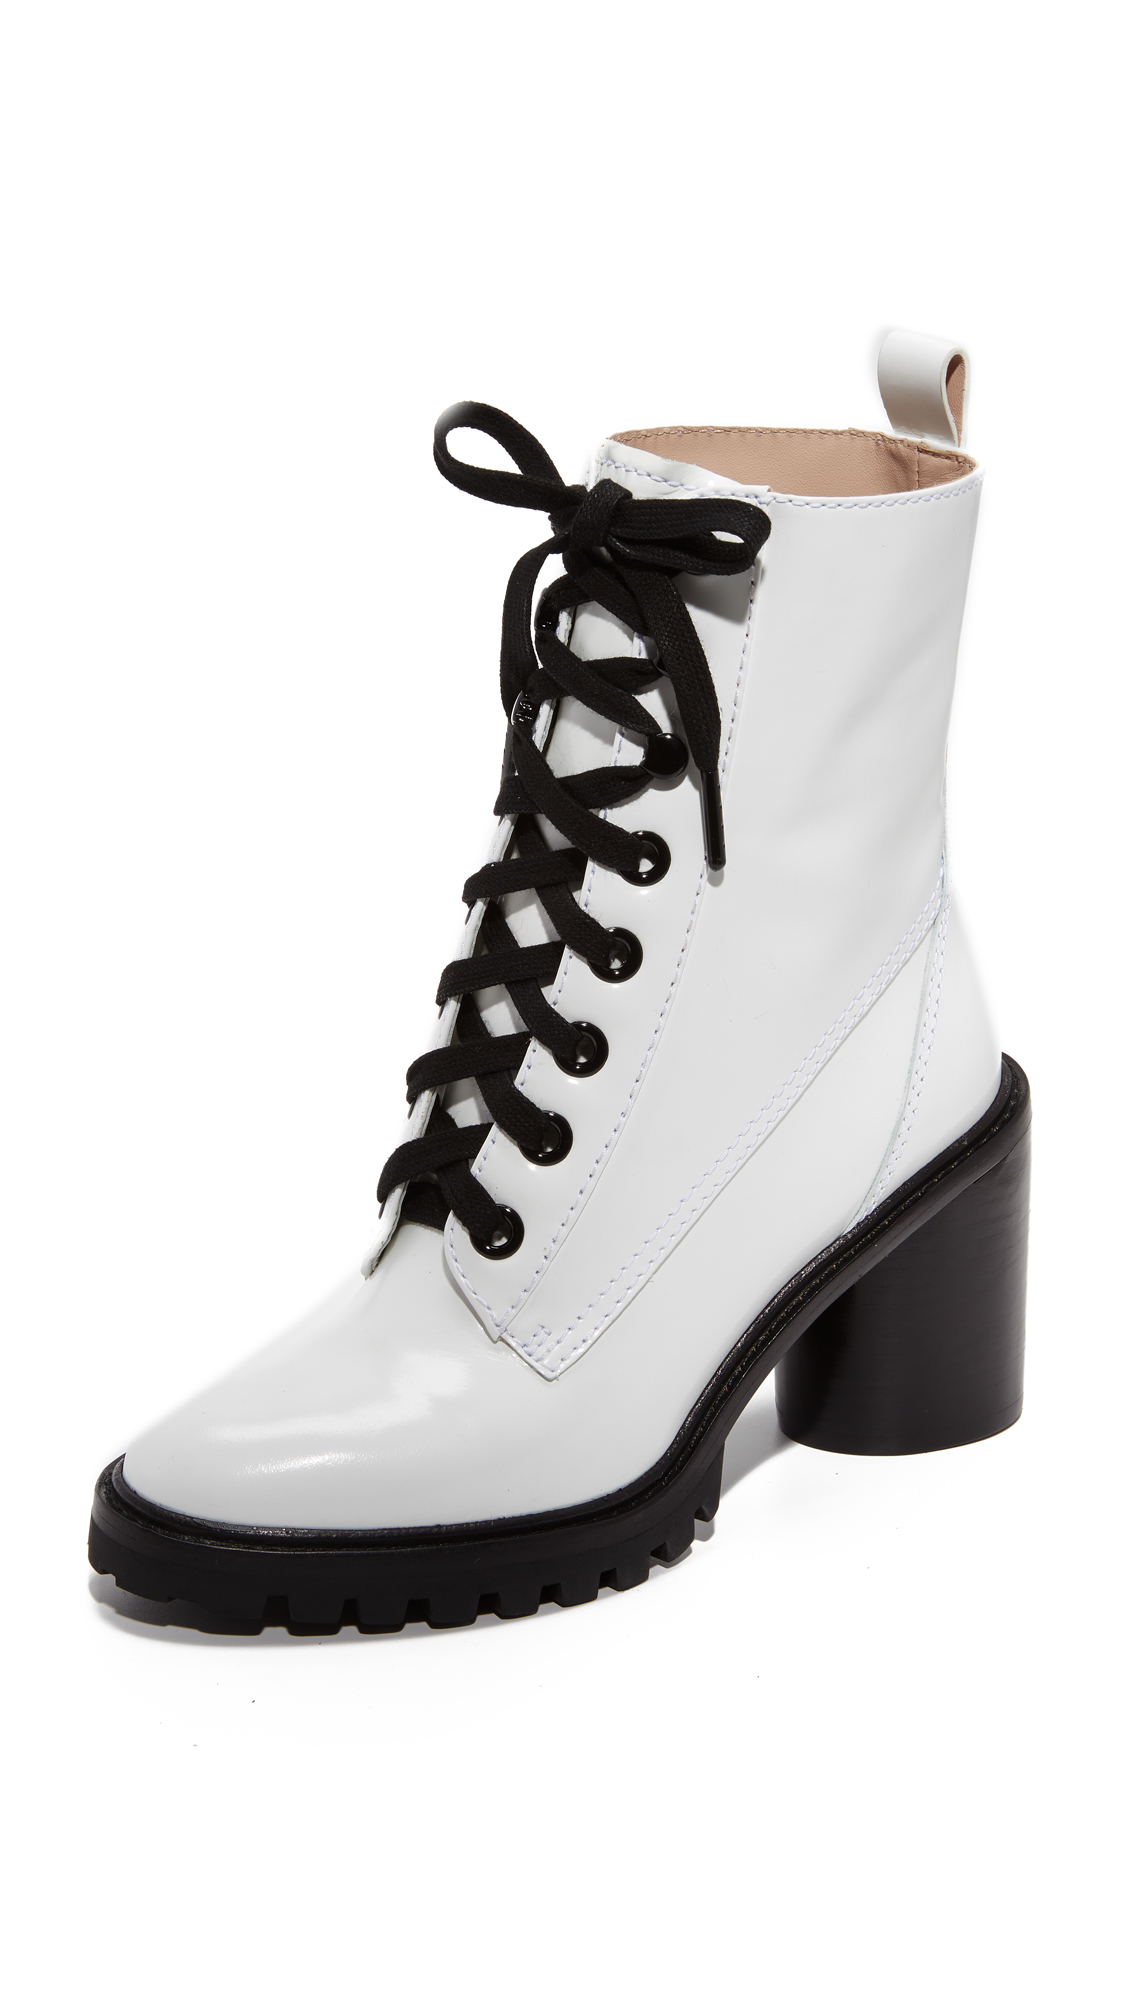 Marc Jacobs Ryder Lace Up Ankle Boots - White